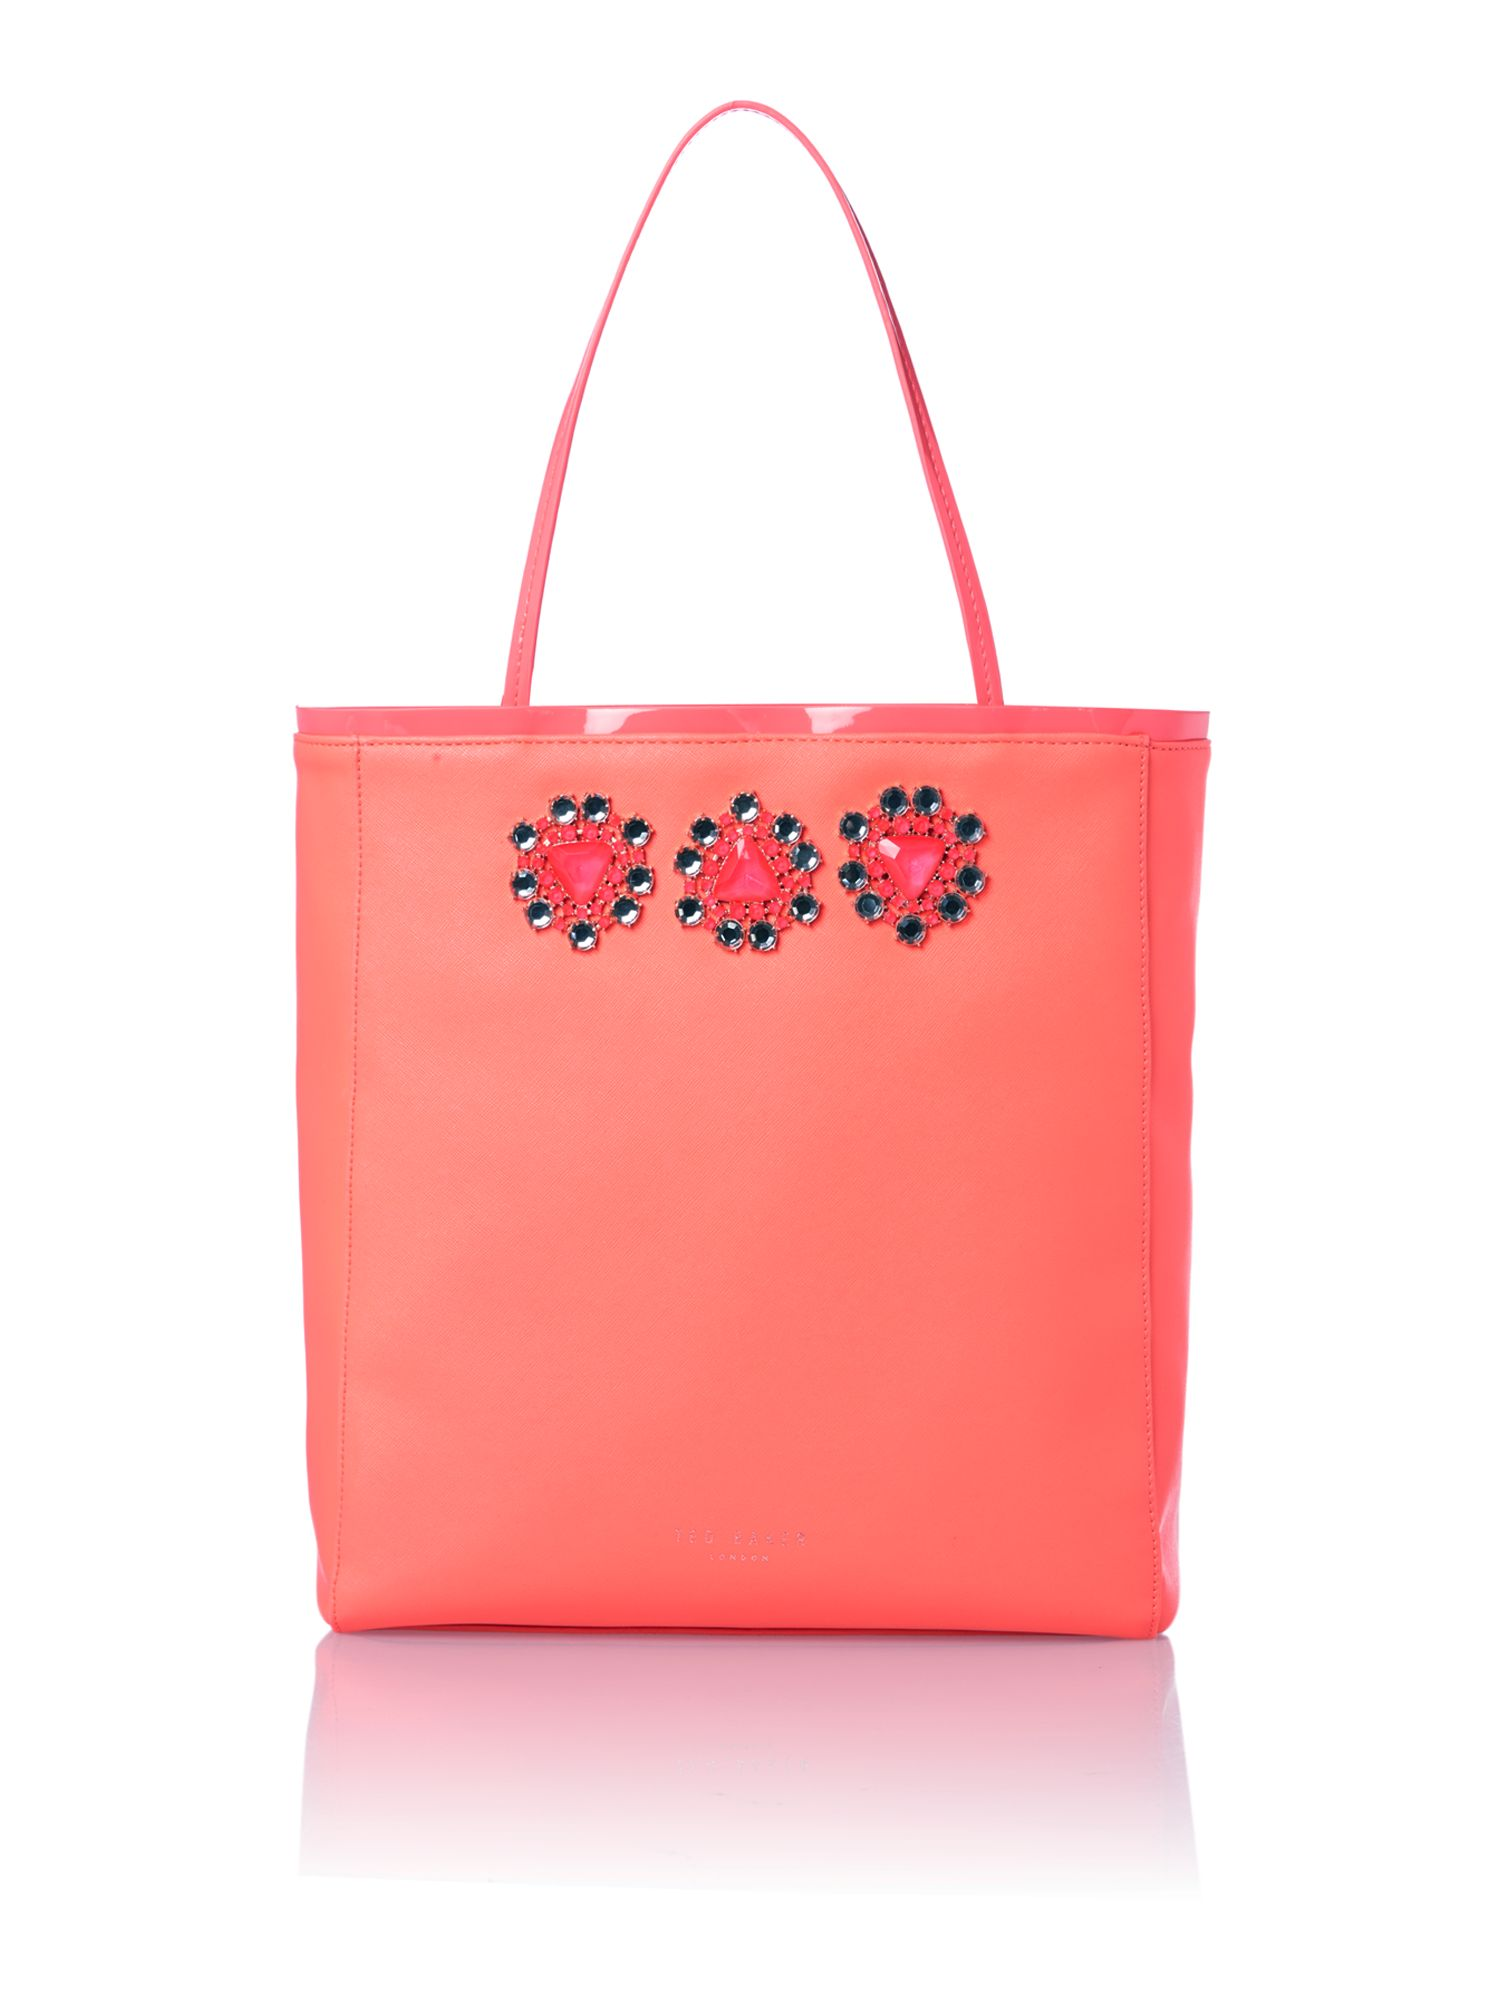 Pink large jewel tote bag